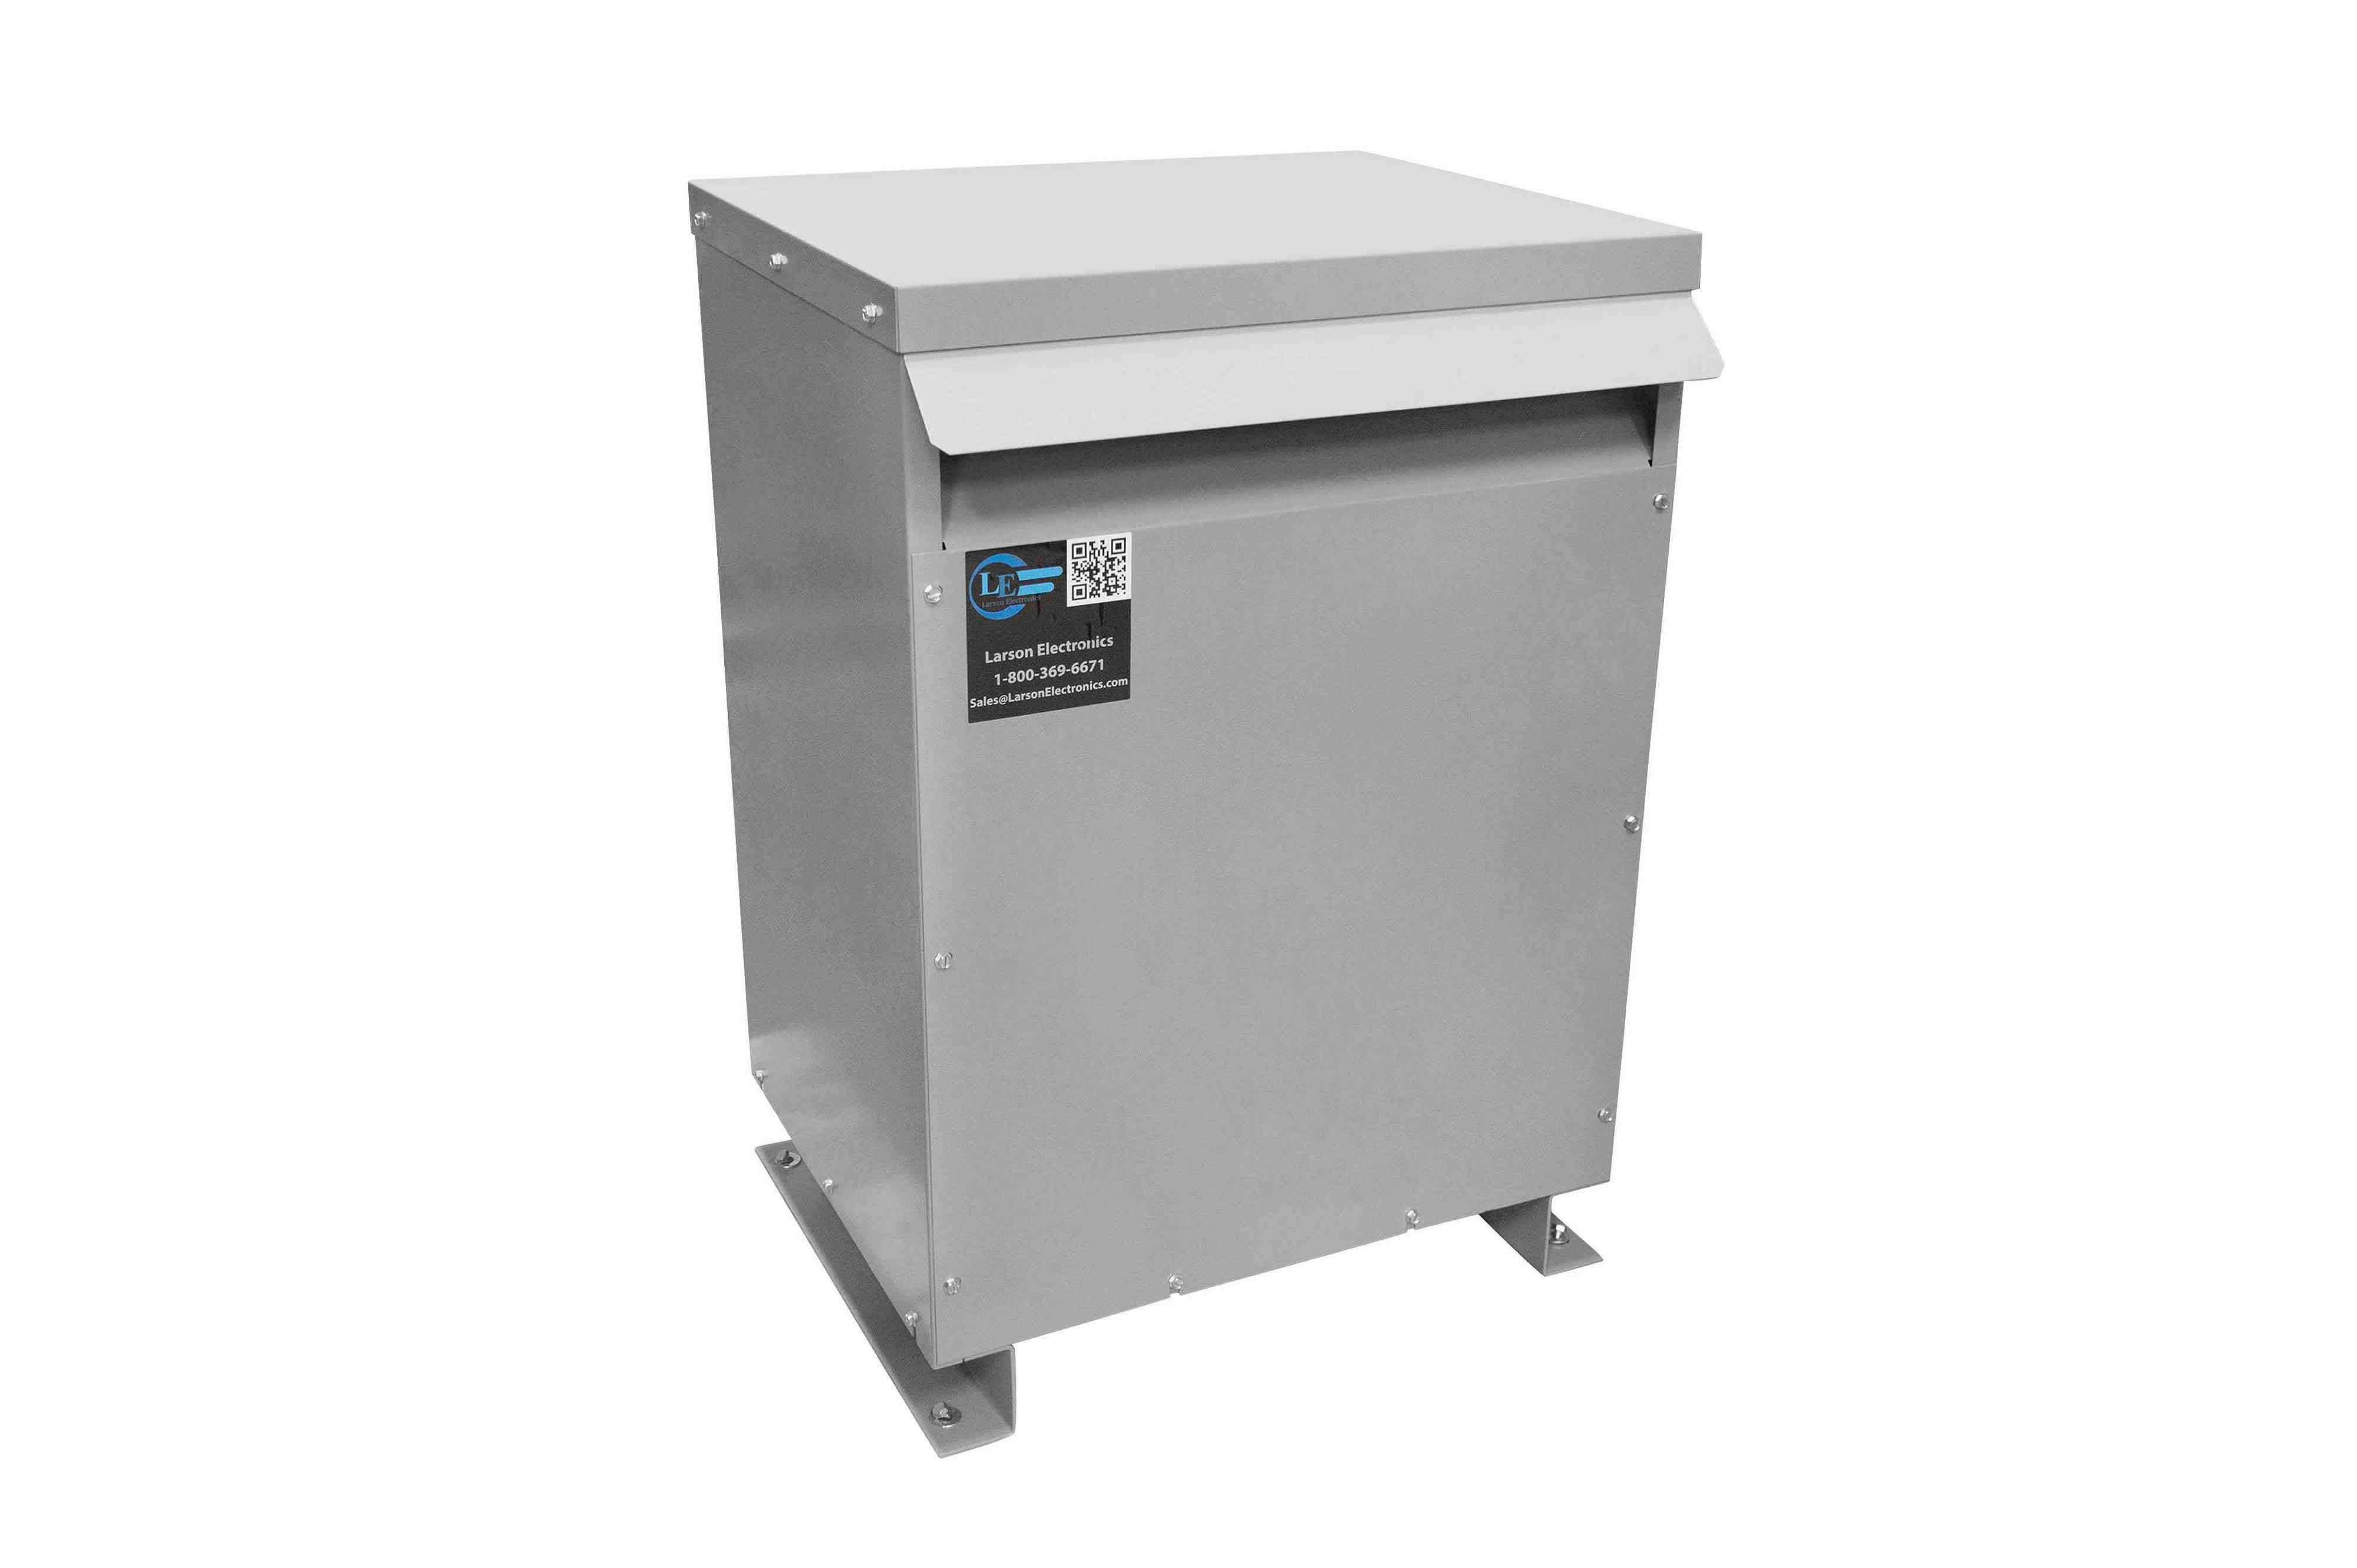 300 kVA 3PH DOE Transformer, 240V Delta Primary, 208Y/120 Wye-N Secondary, N3R, Ventilated, 60 Hz